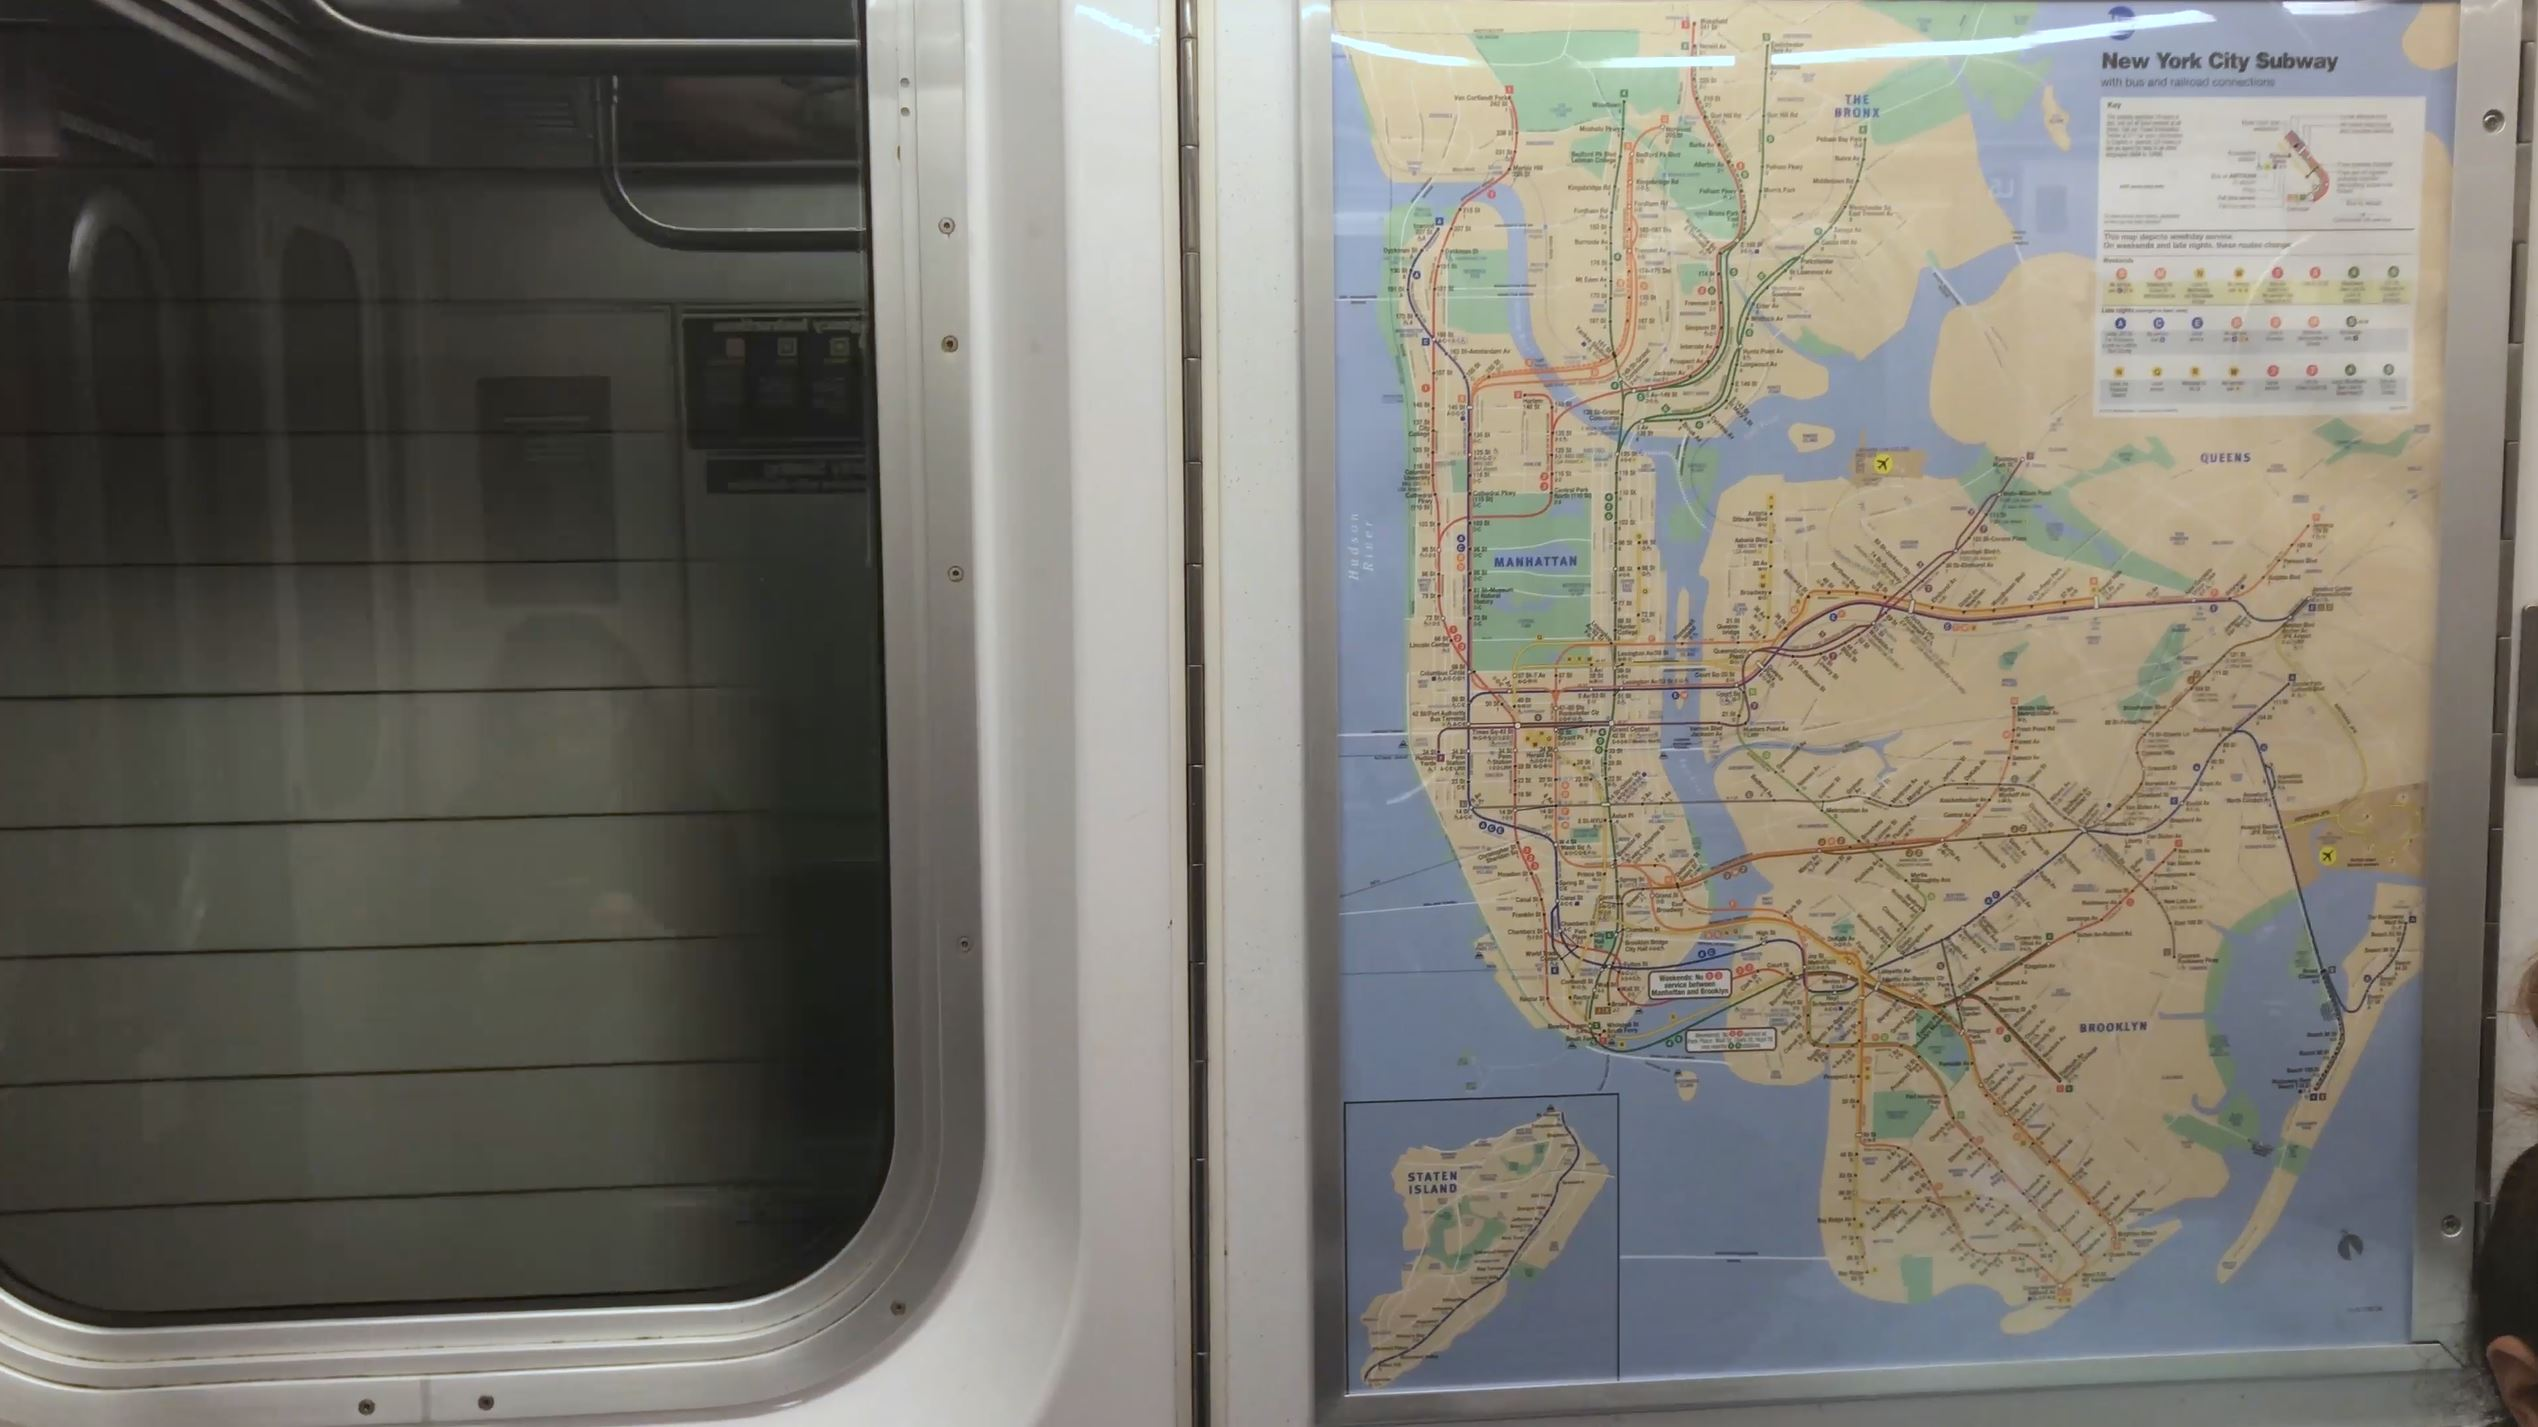 25 Things You Need to Know About the NYC Subway